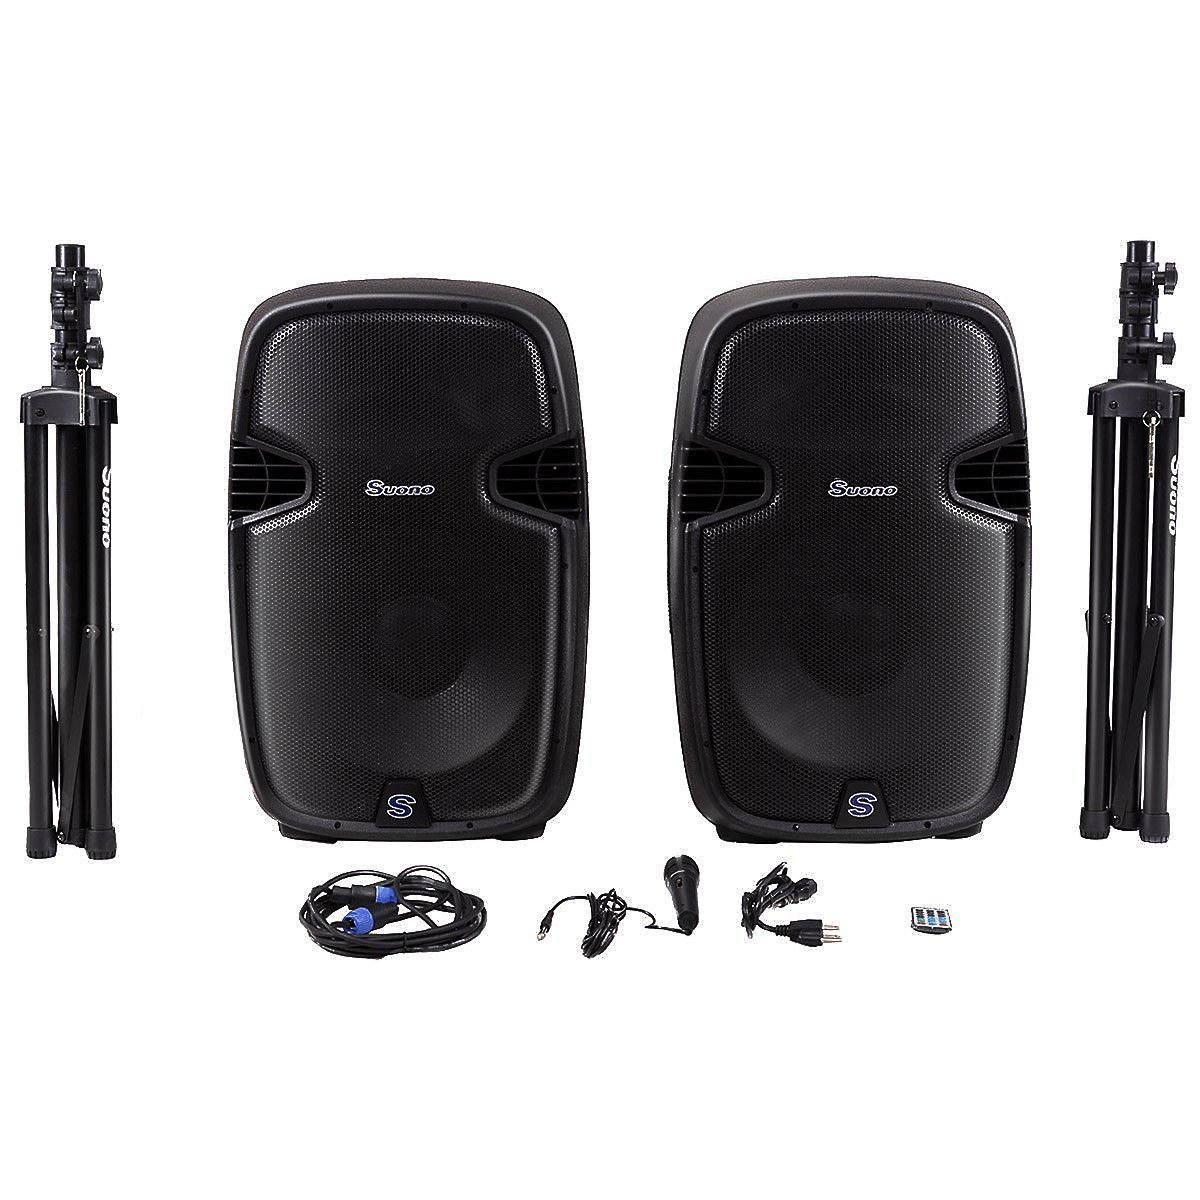 Costway Dual 12 Inch 2-way 2000Watts Powered Speakers with Bluetooth, Mic, Speaker Stands, Control & Cables 22602-CYPE